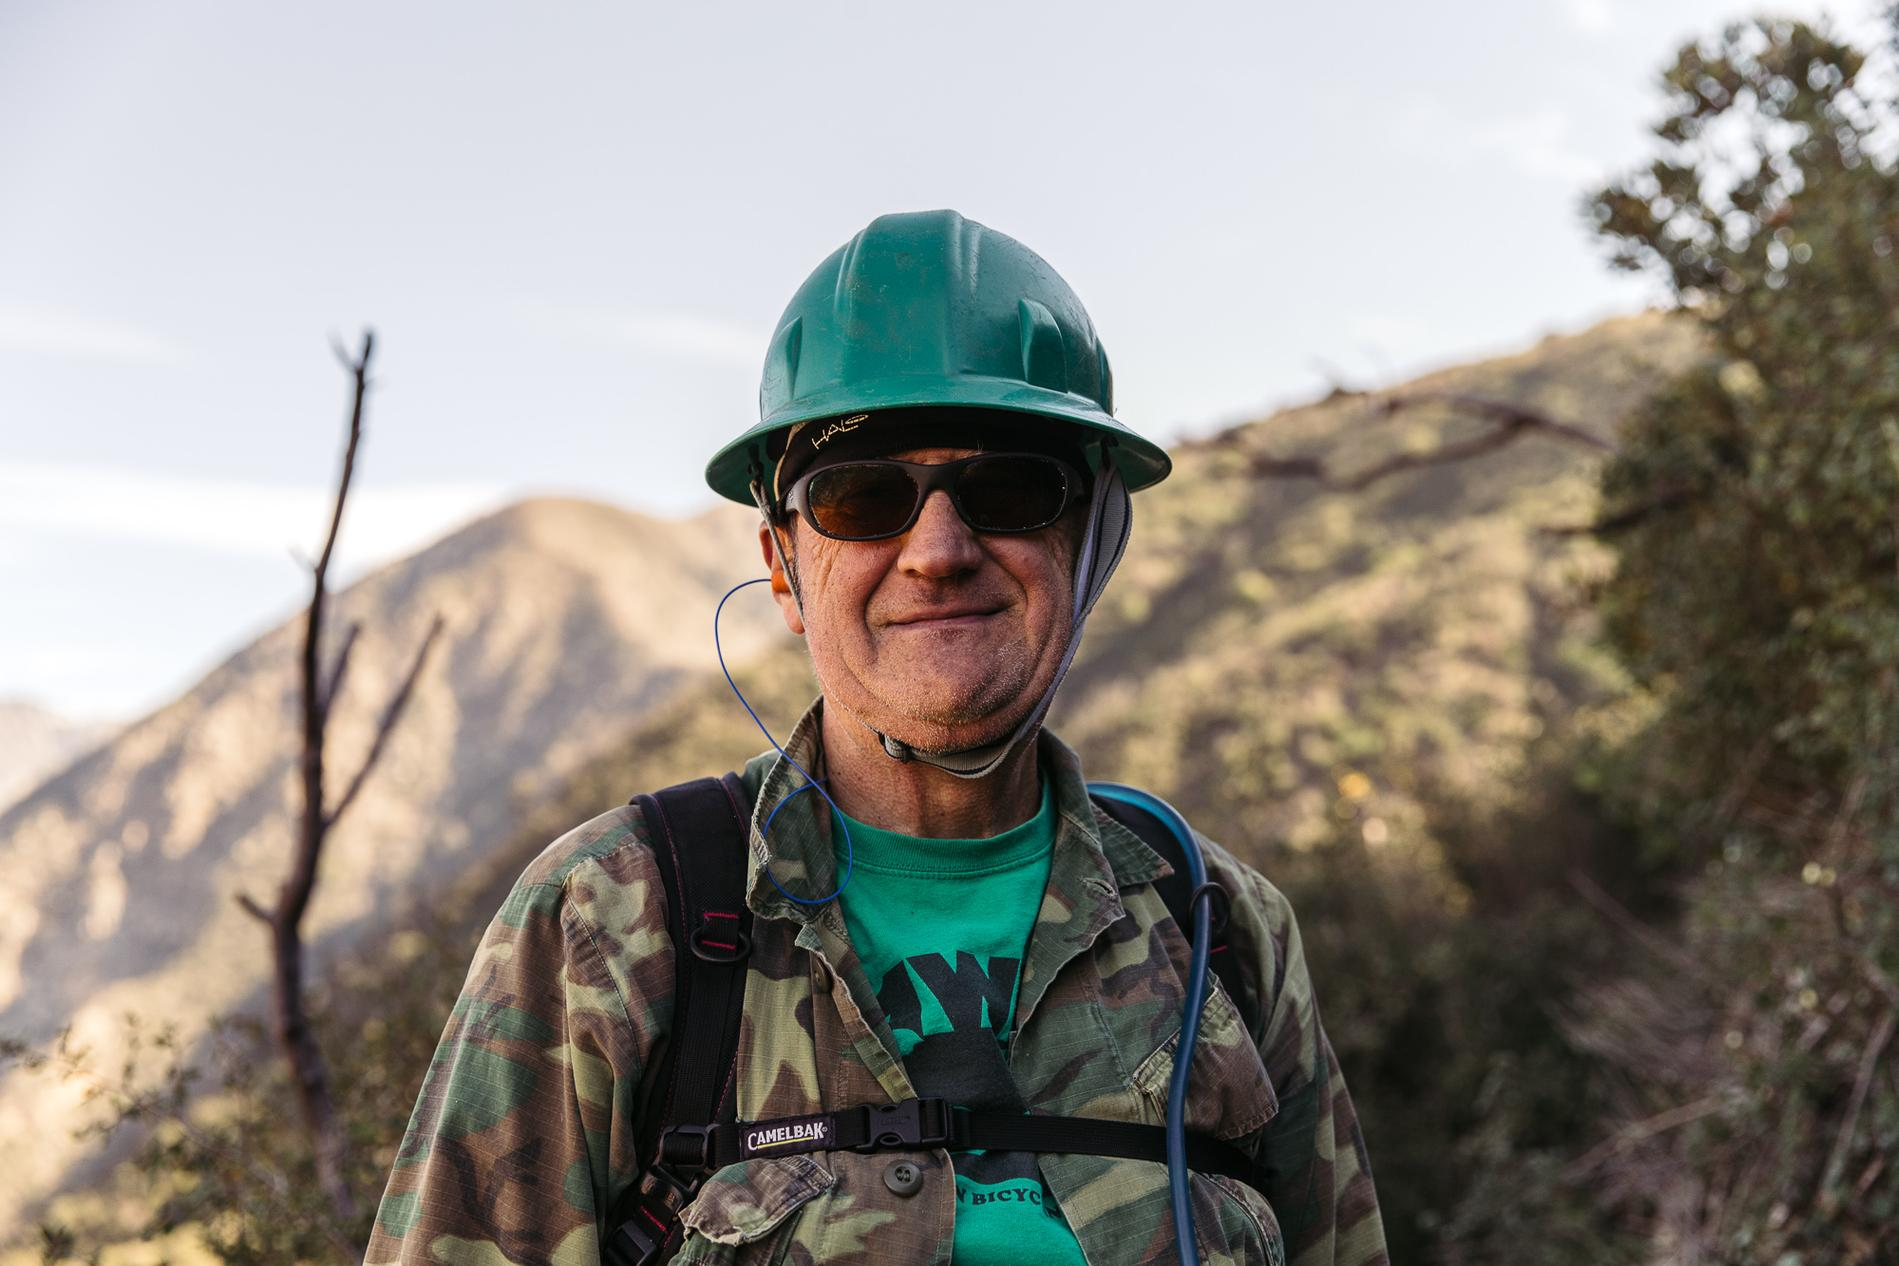 Mitch is 67 and still works on trails, what's your excuse? ;-)